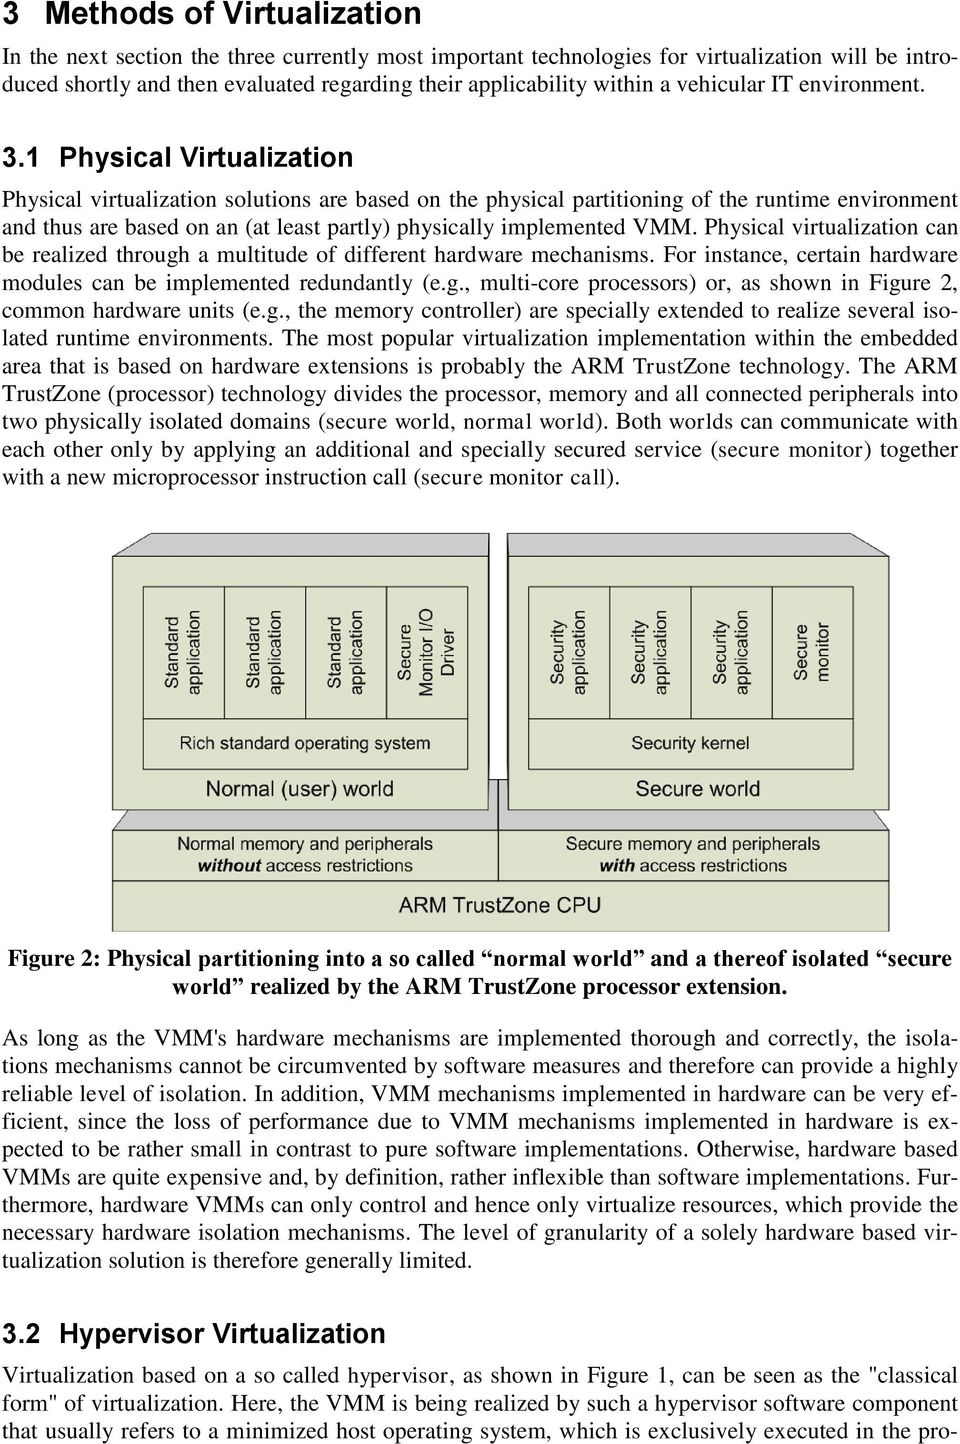 1 Physical Virtualization Physical virtualization solutions are based on the physical partitioning of the runtime environment and thus are based on an (at least partly) physically implemented VMM.